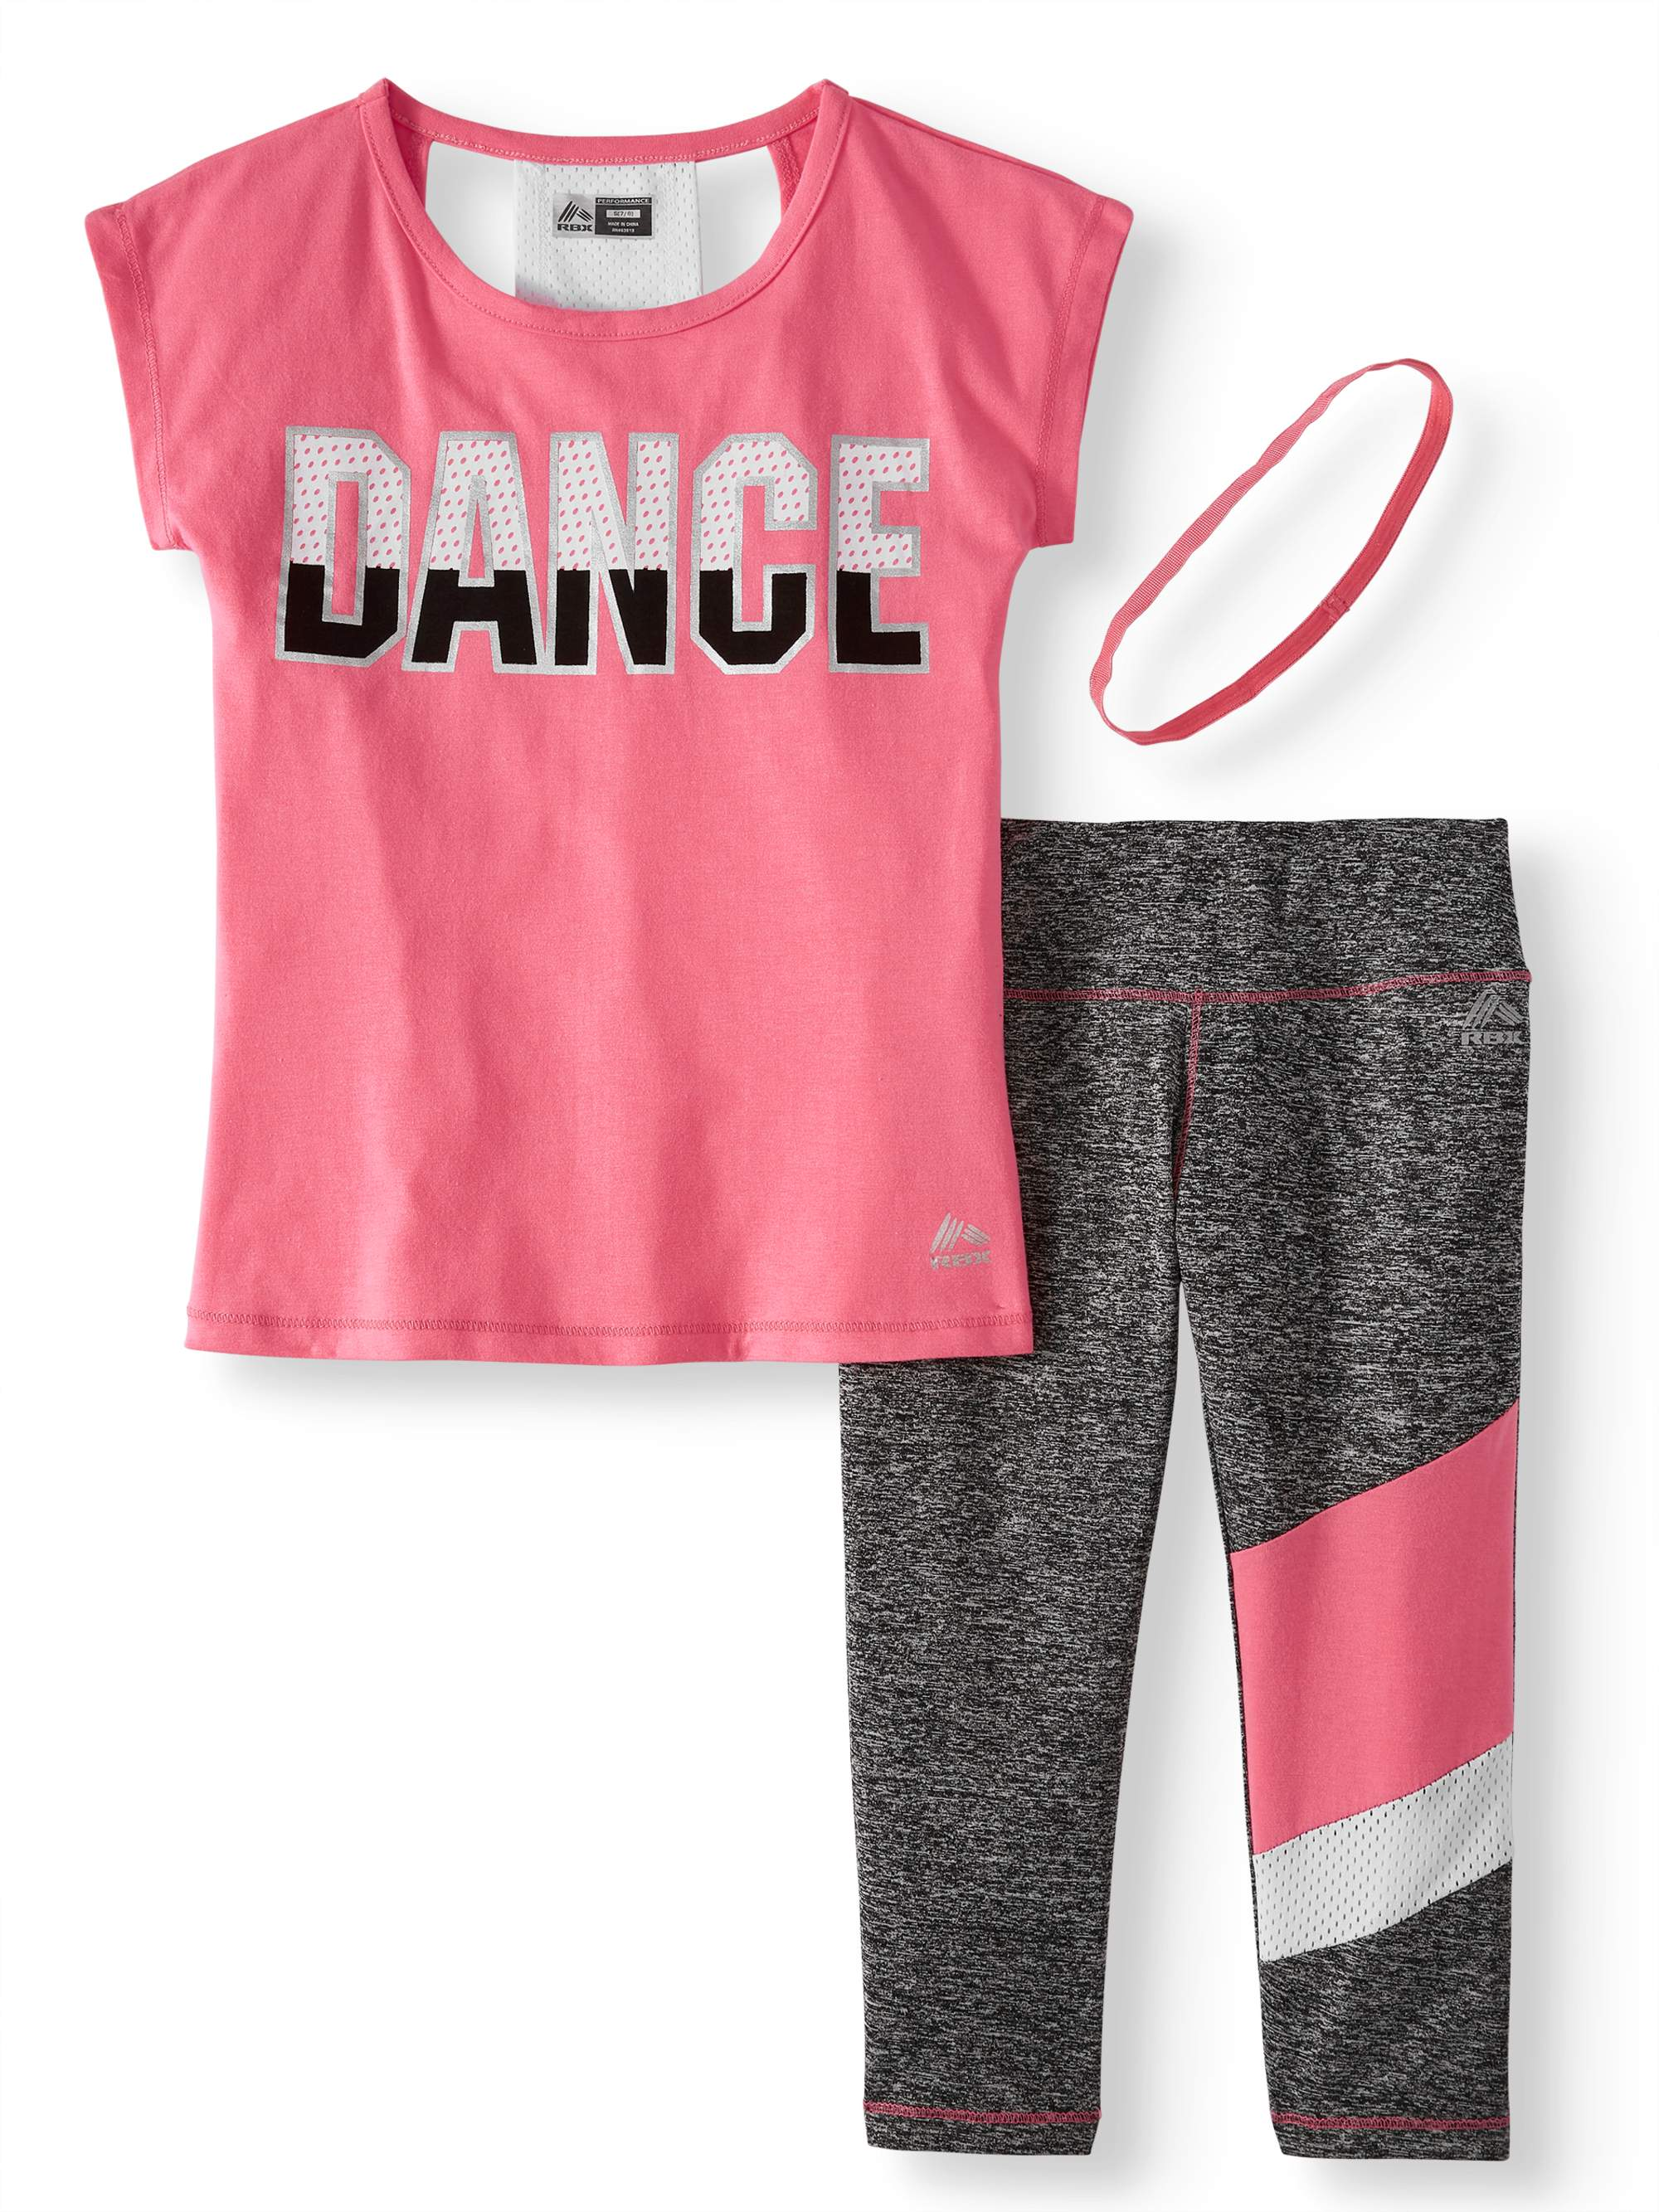 Racerback Graphic Top and Capri Performance Legging, 2-Piece Active Set (Little Girls & Big Girls)